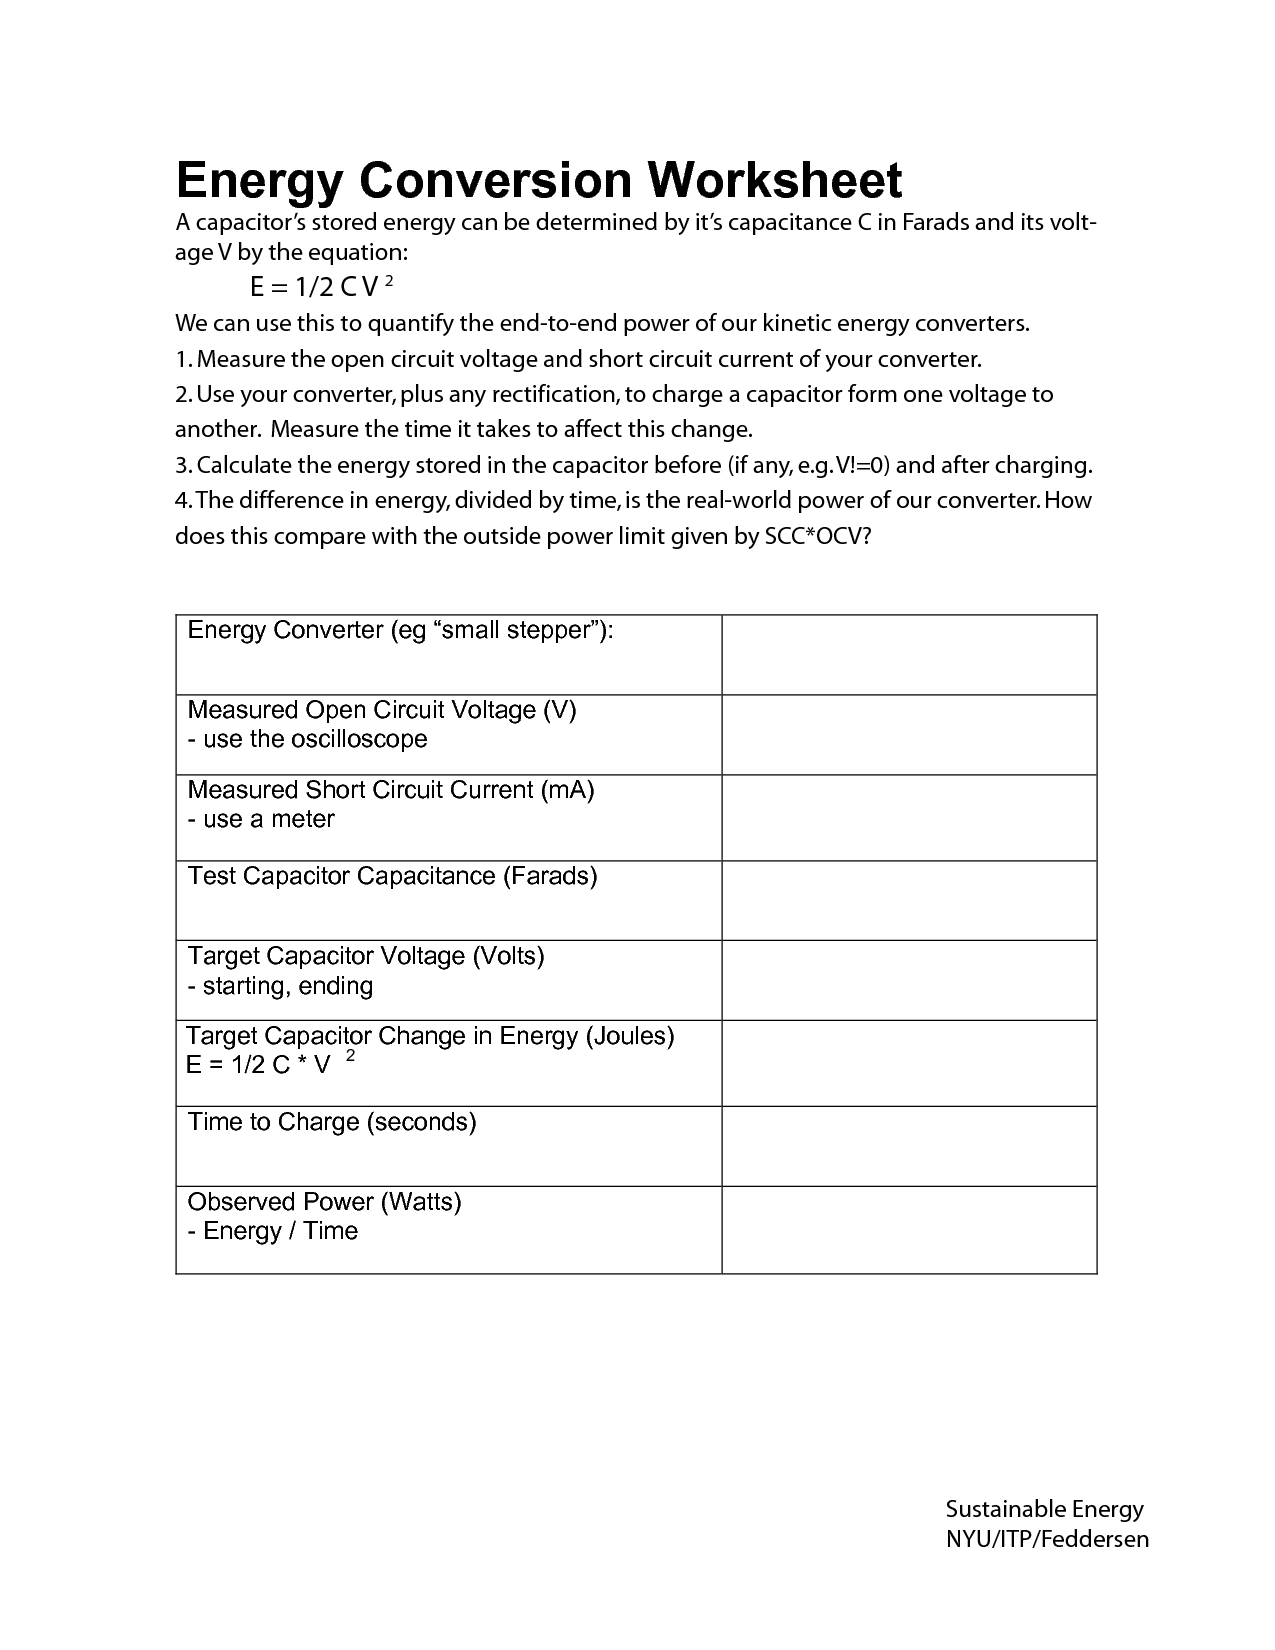 Worksheet For Energy